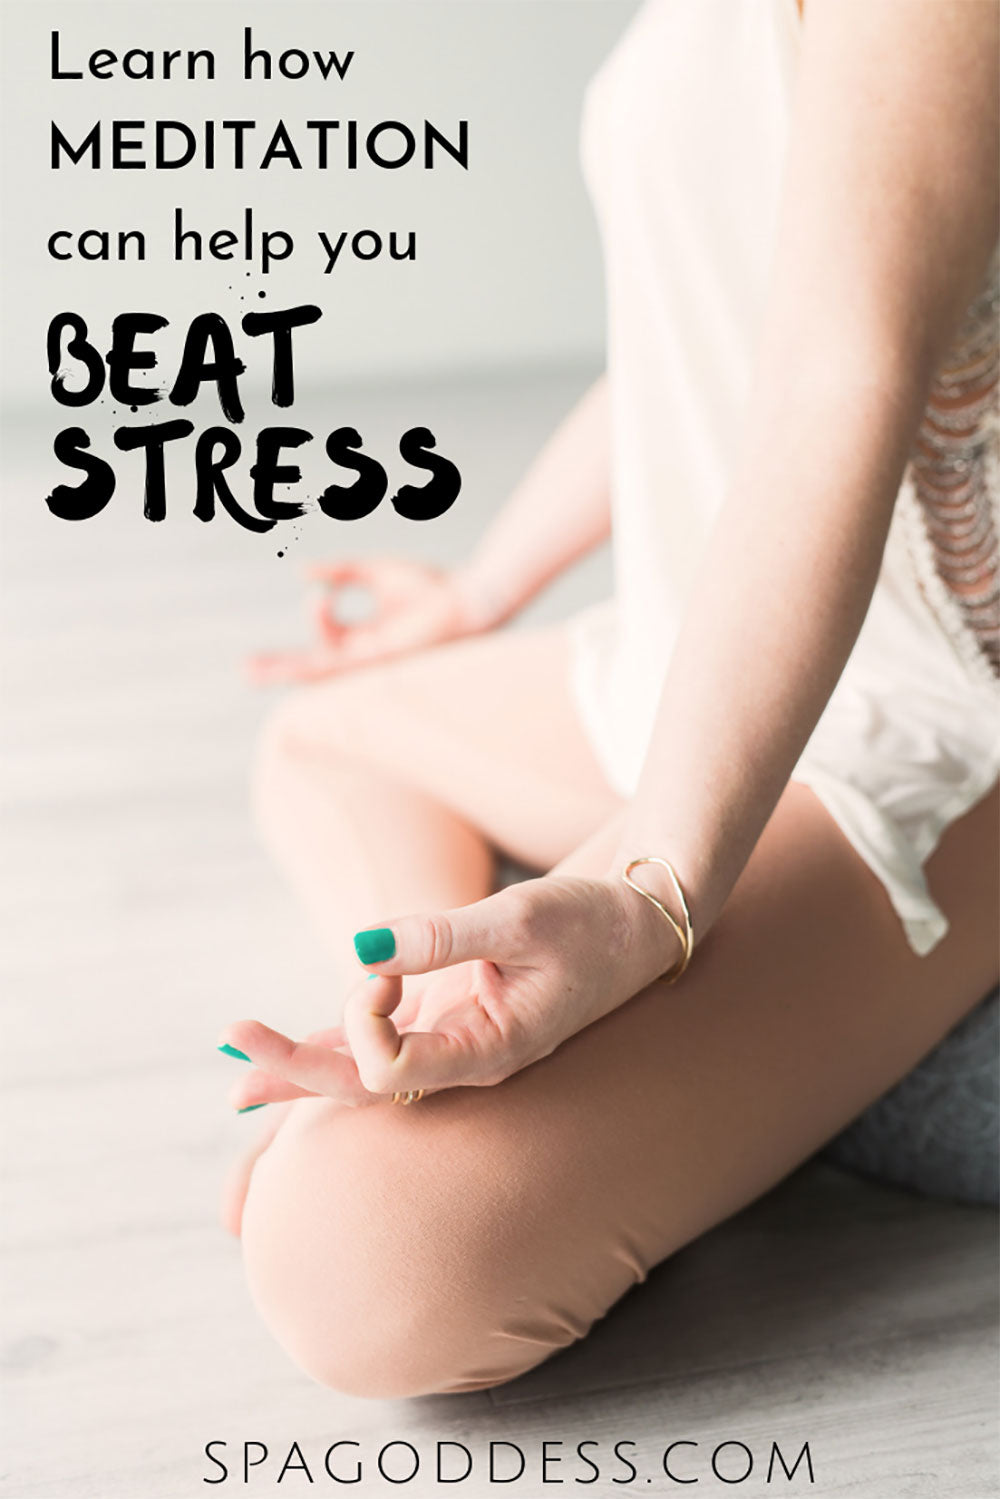 Learn how meditation can help you beat stress